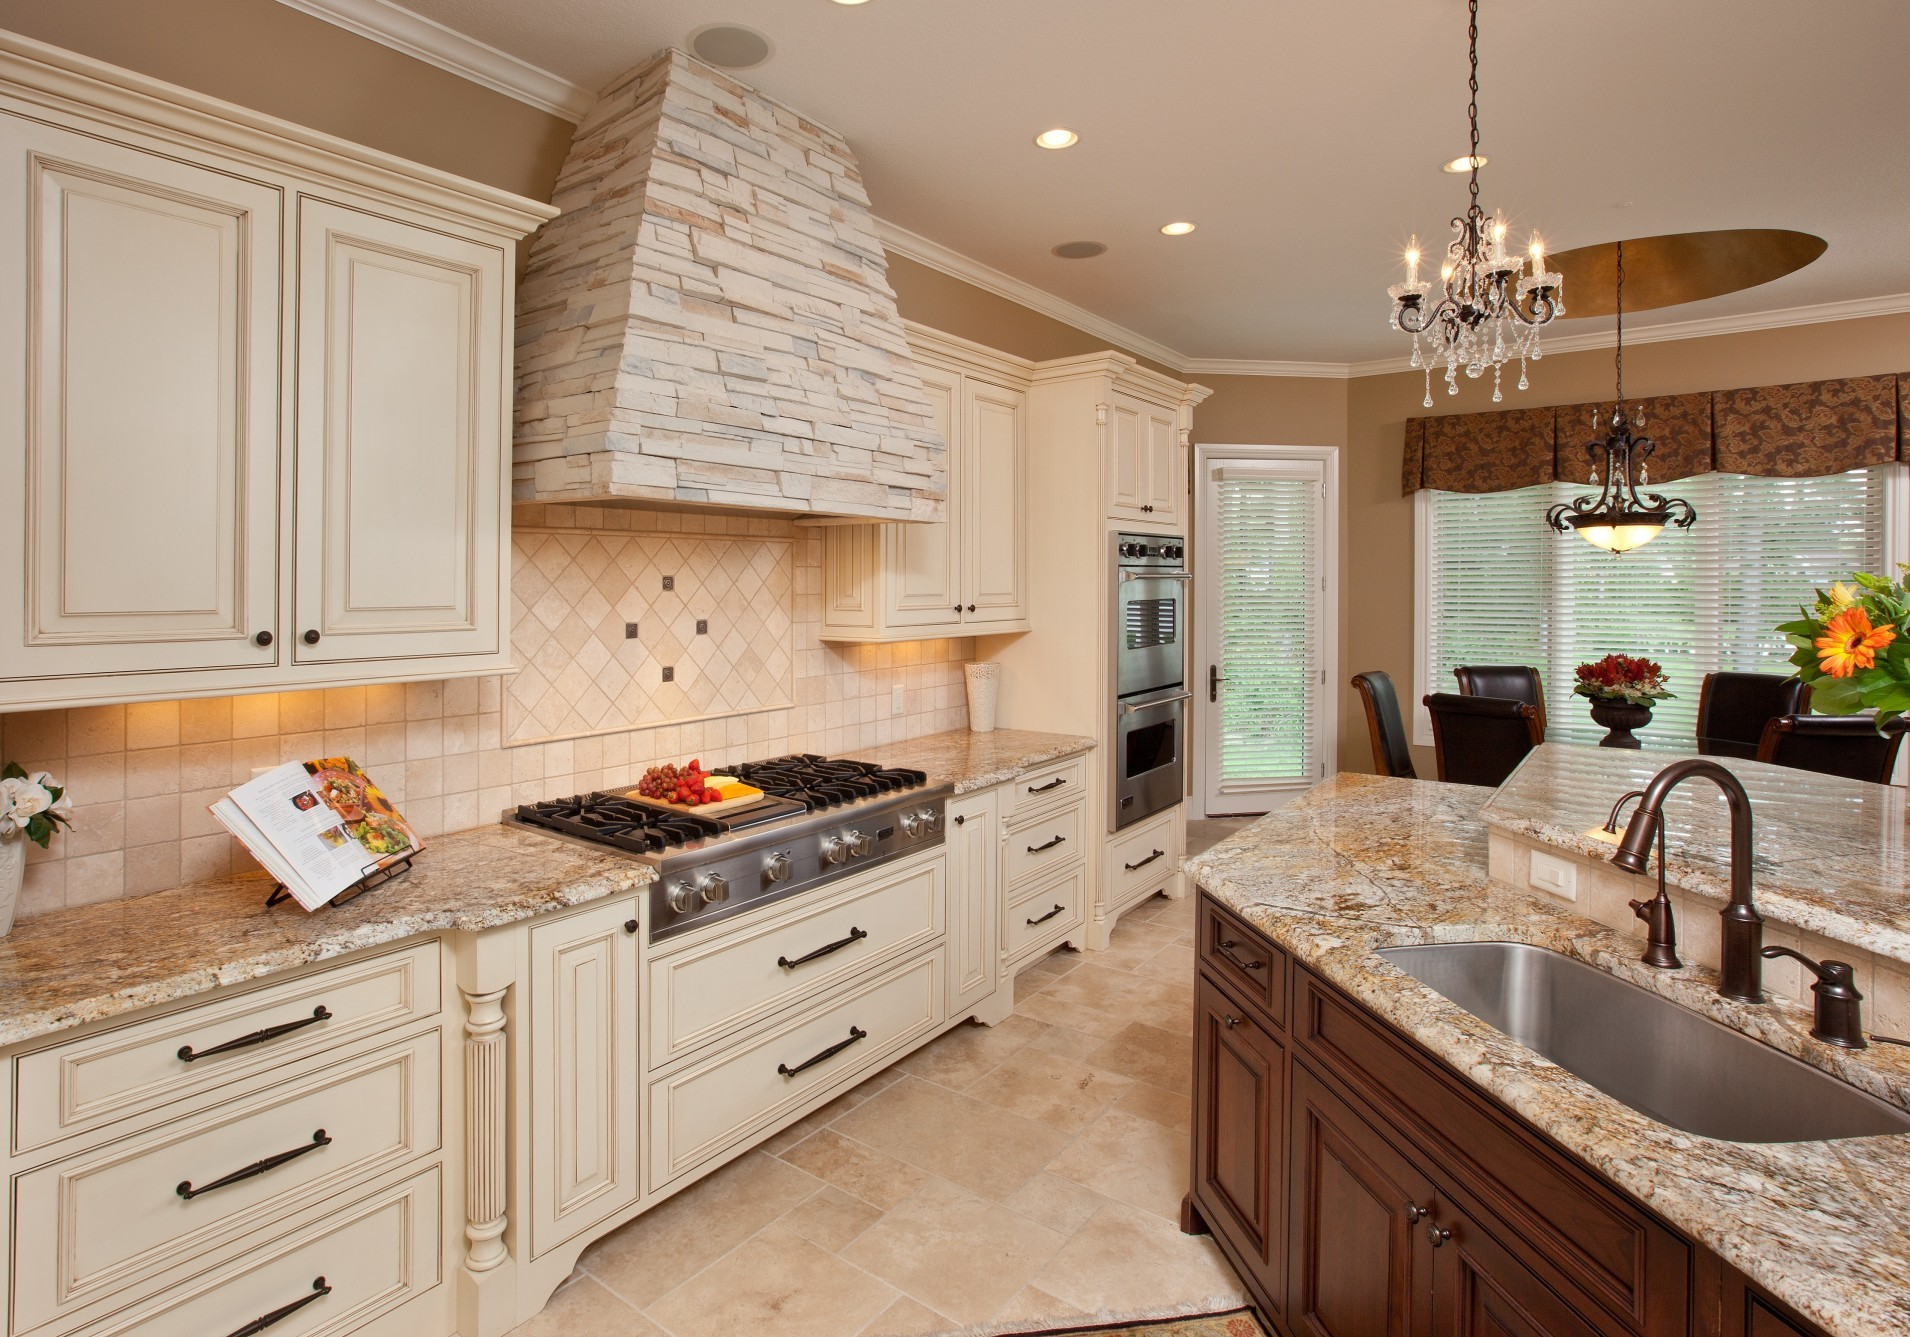 Best Kitchen Gallery: Holiday Kitchen Cabi S In Morton Illinois of Holiday Kitchen Cabinets on rachelxblog.com